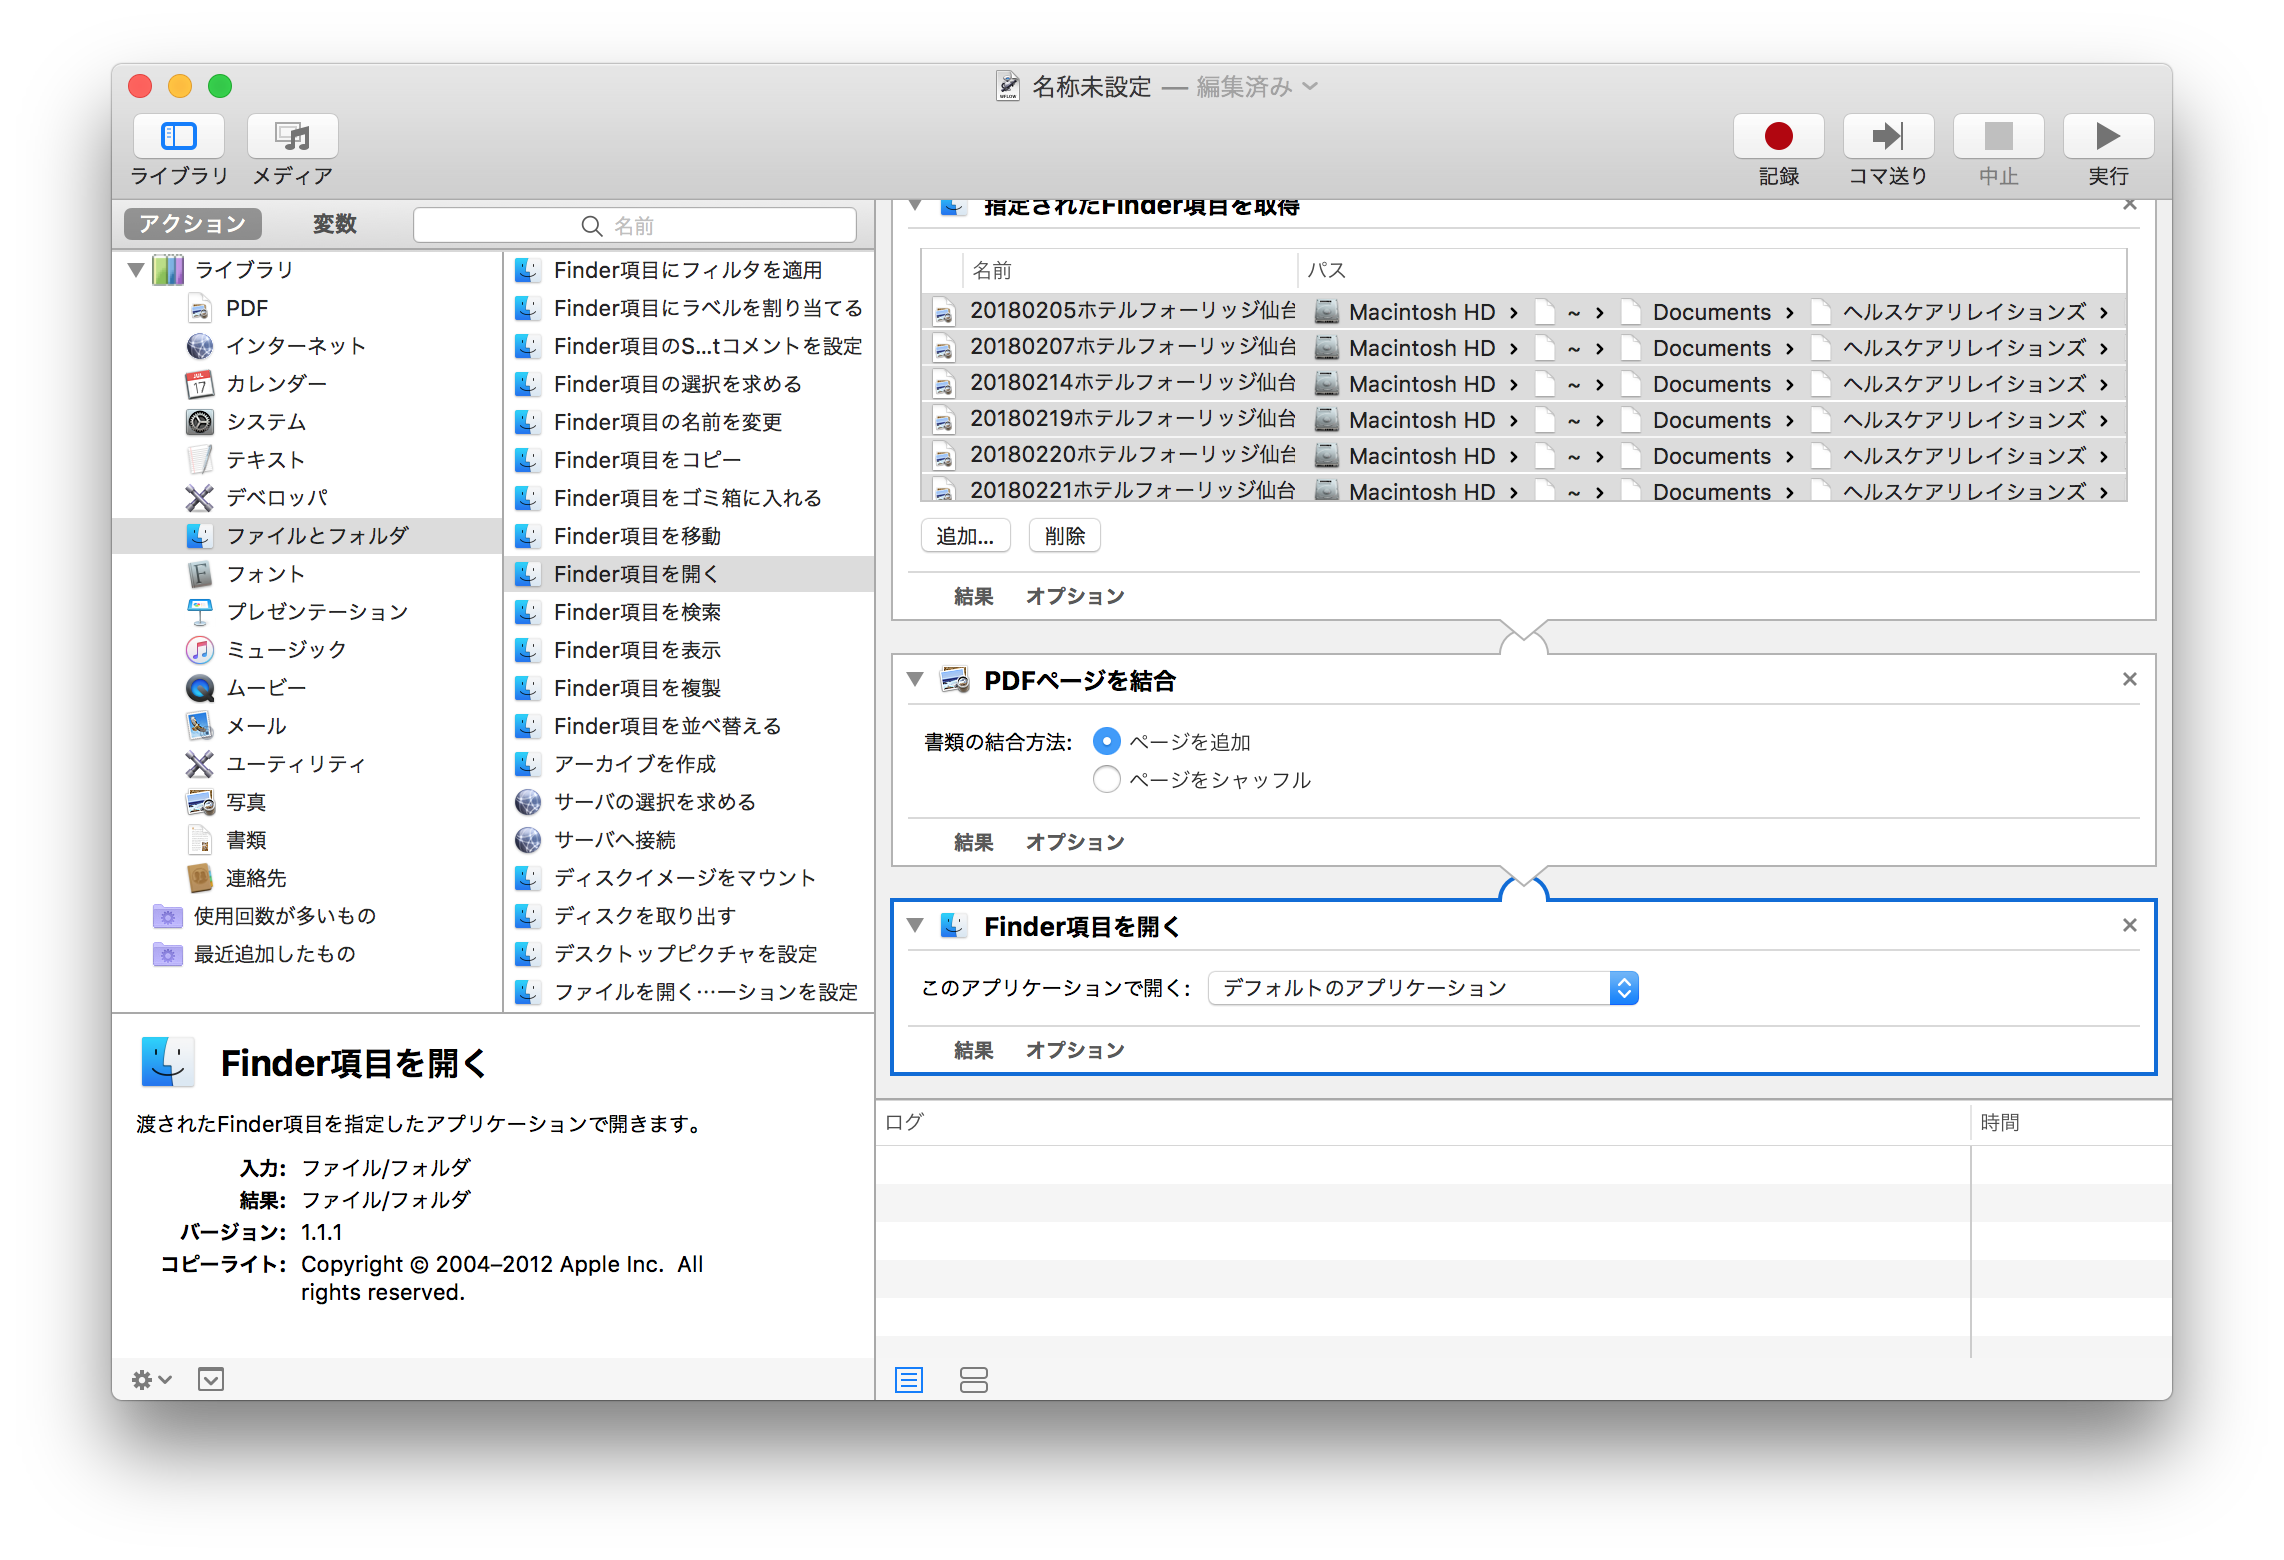 http://blogs.itmedia.co.jp/t0tsukawa/open-default-app.png